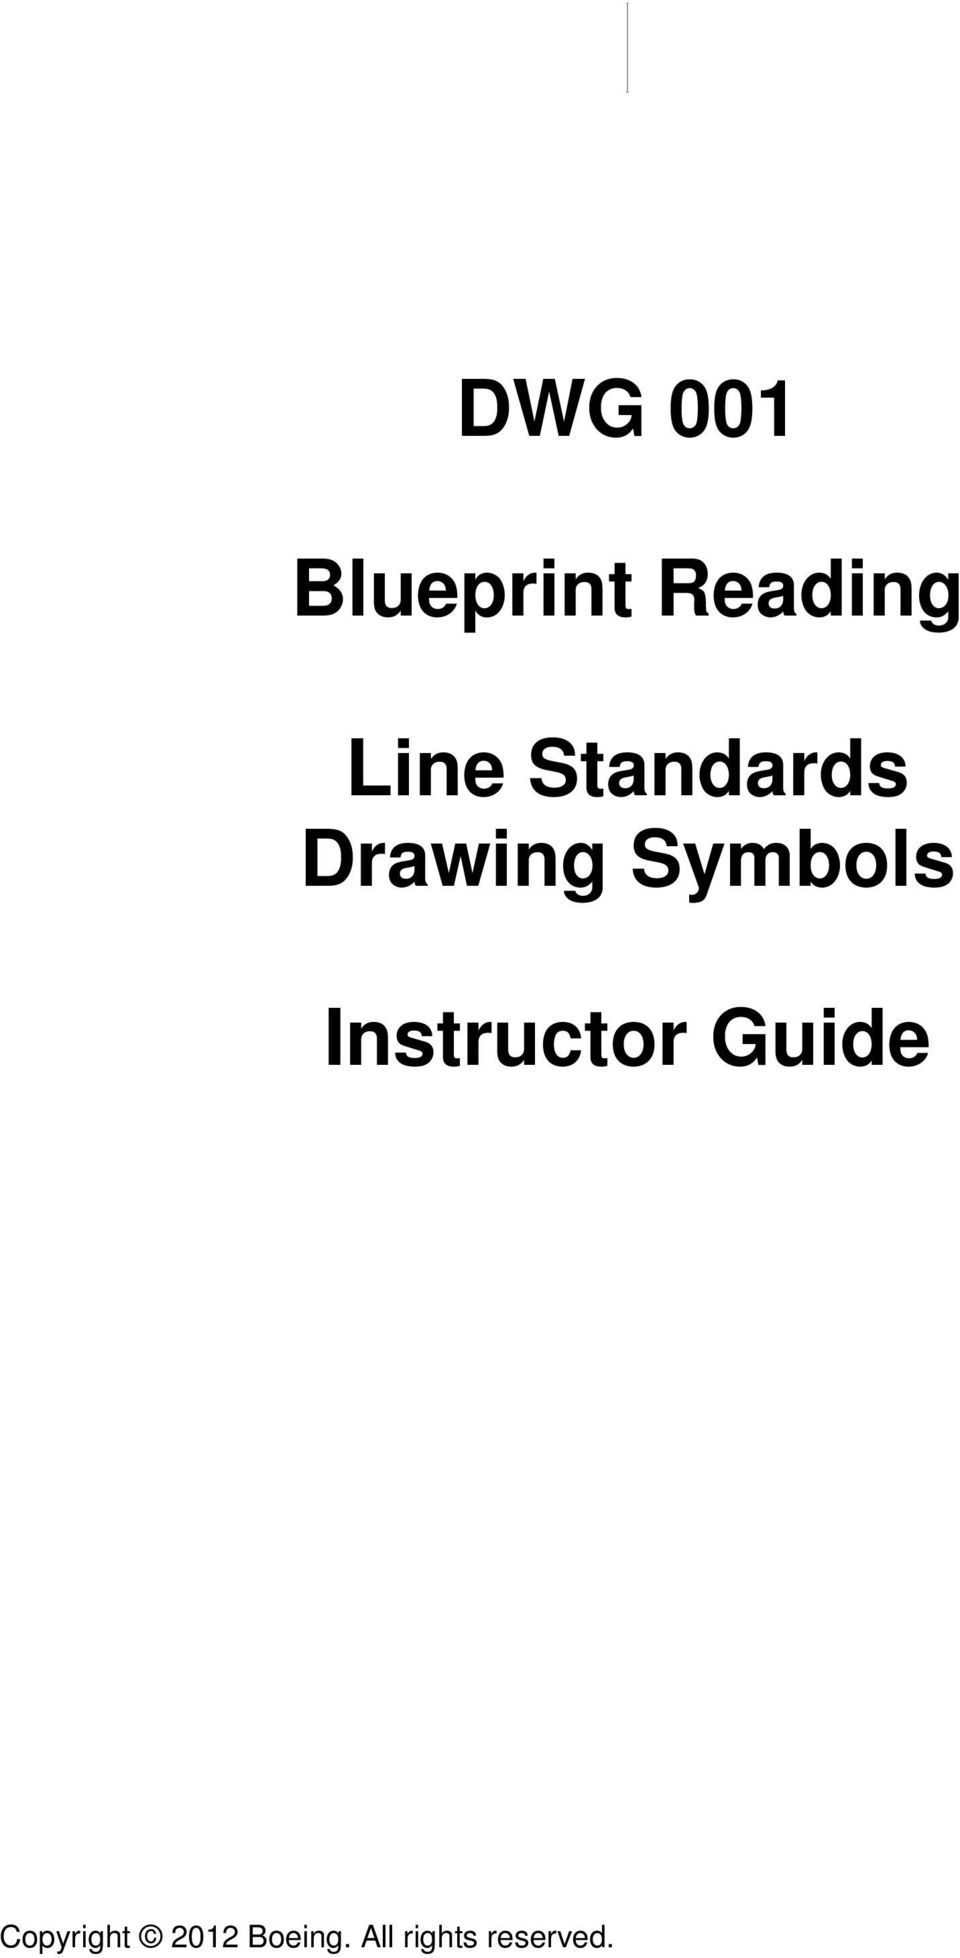 DWG 001. Blueprint Reading. Line Standards Drawing Symbols